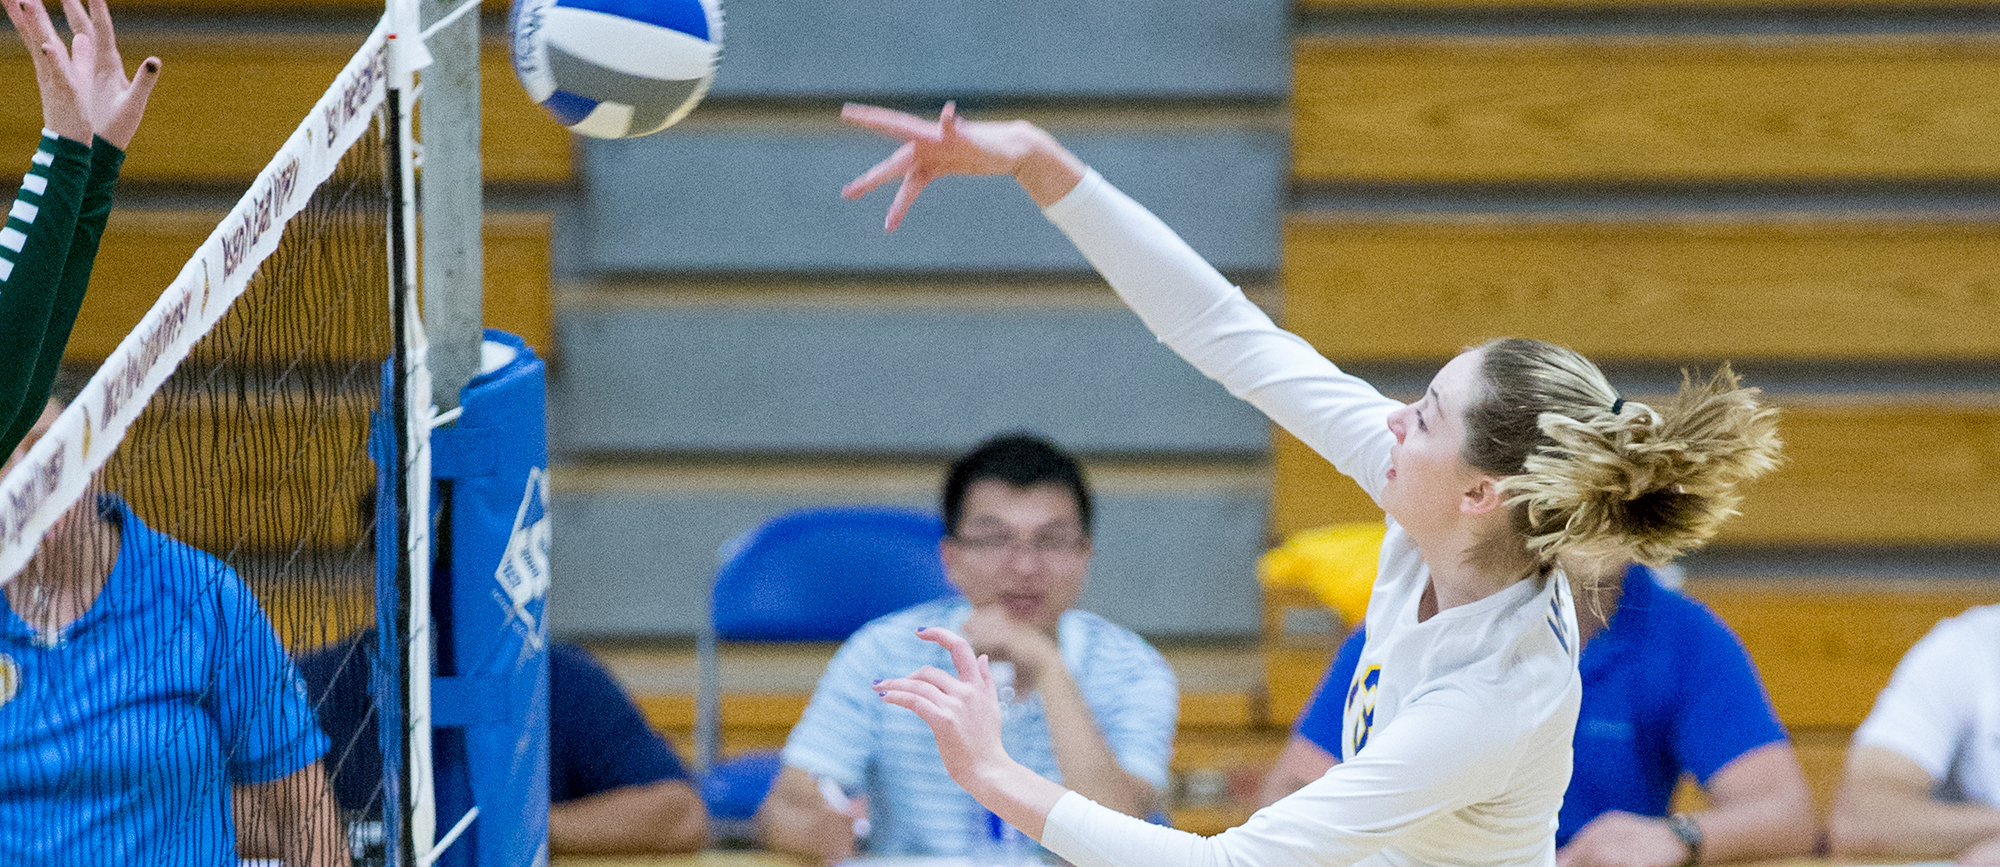 Freshman Abigail Bundy recorded a team-high seven kills in Wednesday's 3-0 loss at Endicott. (Photo by Chris Marion)